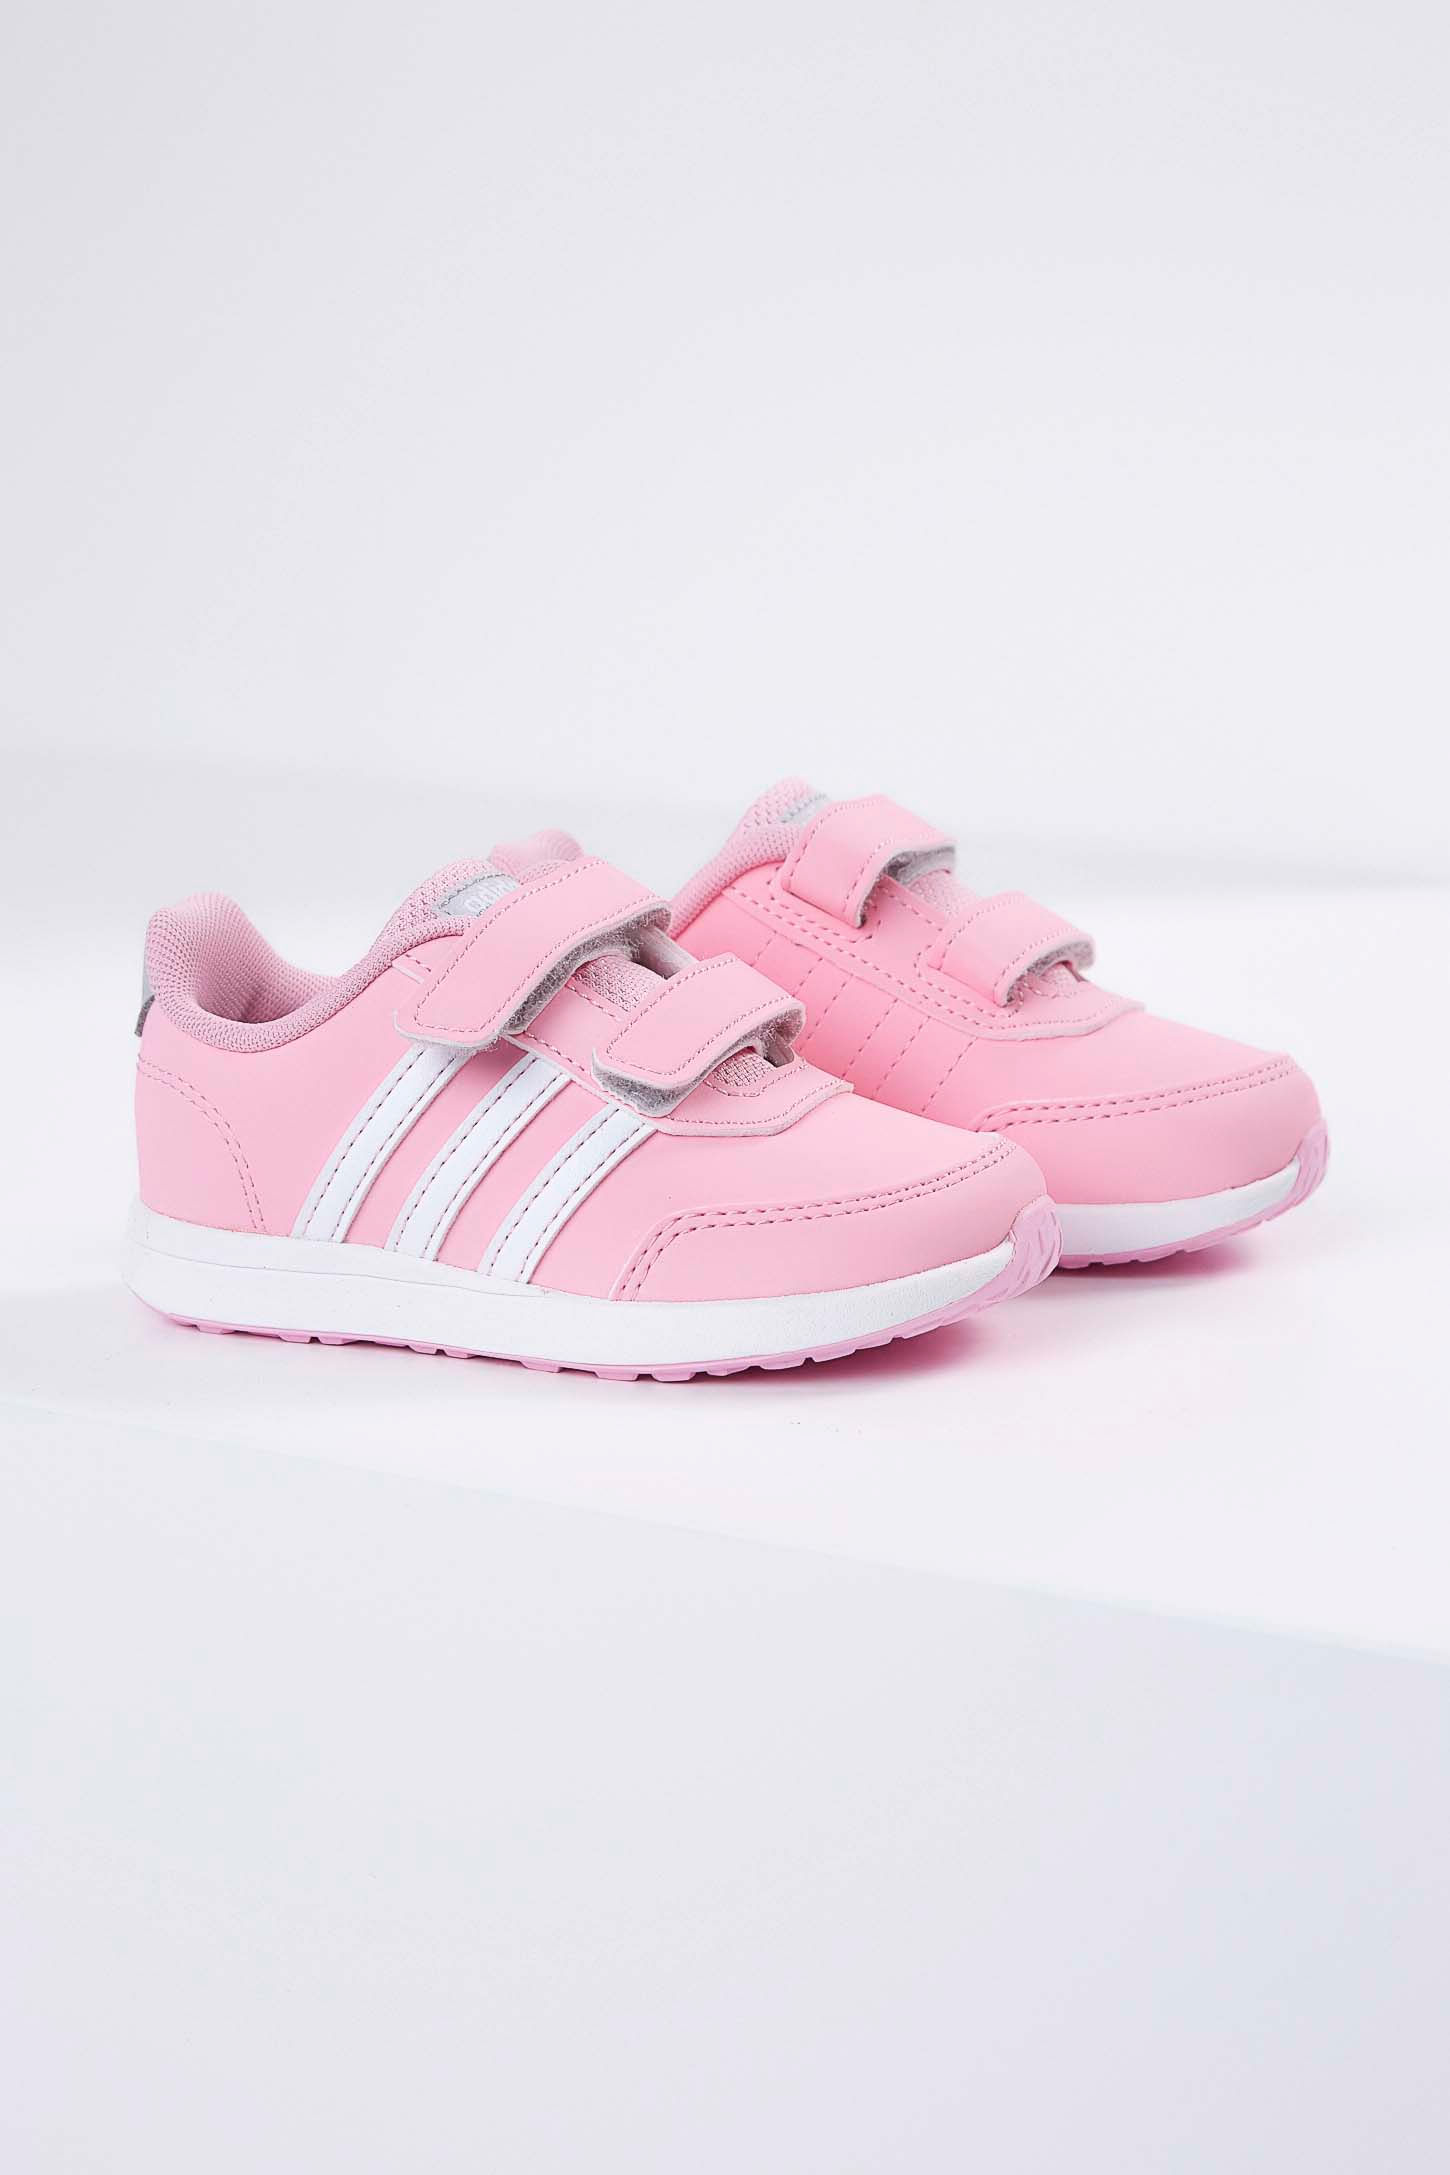 Tenis-Casual-Infantil-Adidas-Switch-2.0-Velcro-Rosa-